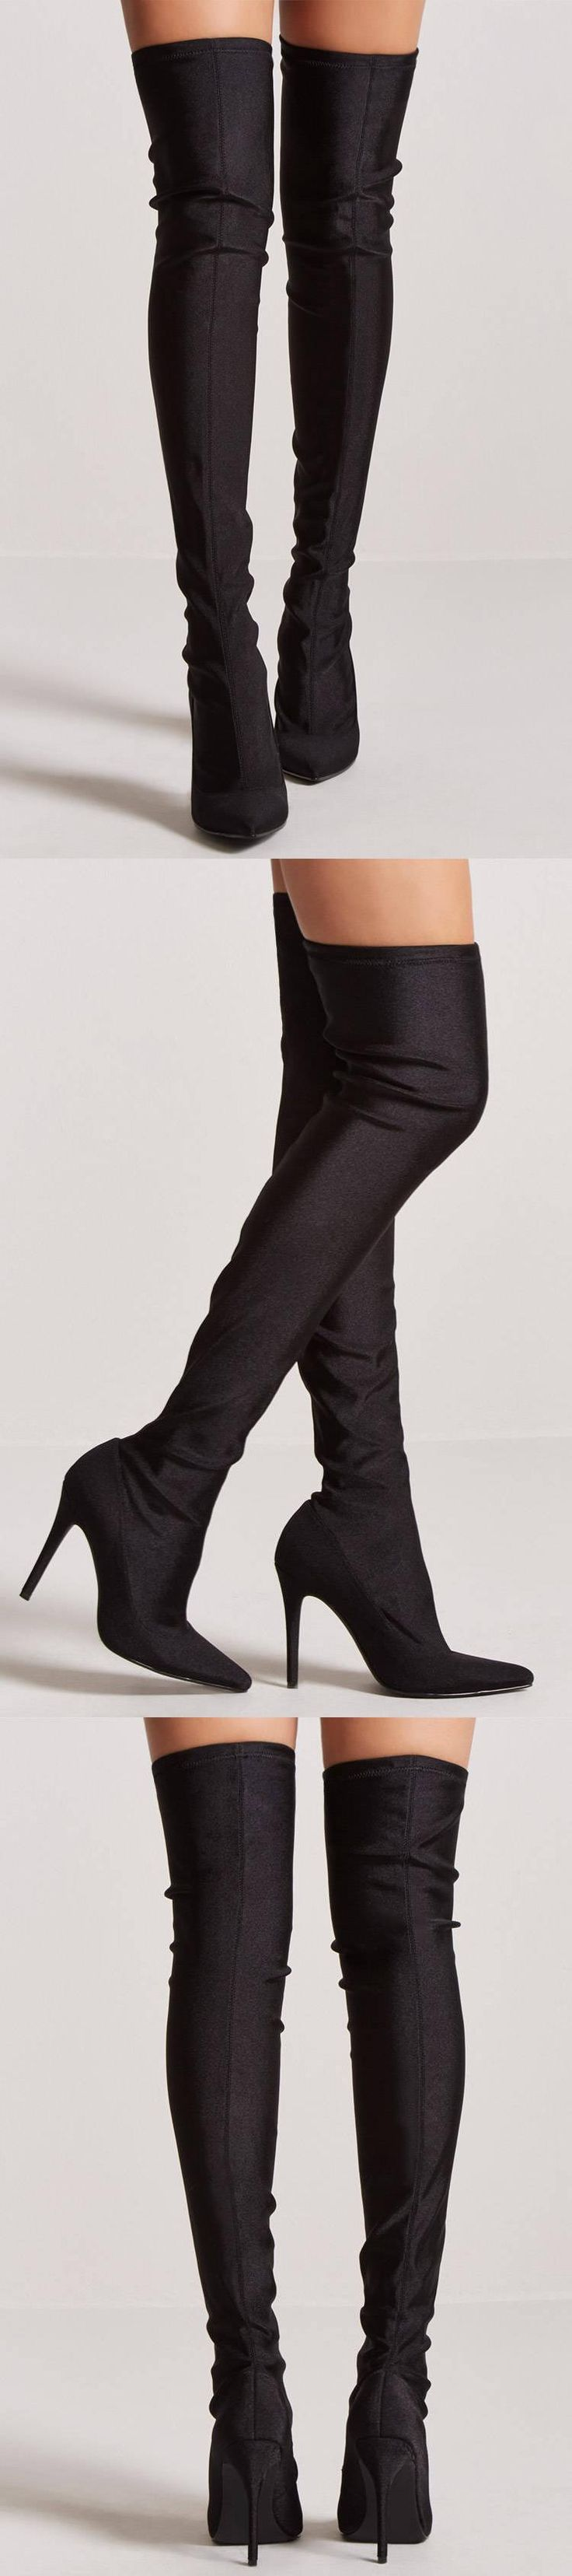 Over-the-Knee Sock Boots // 44.90 USD // Forever 21